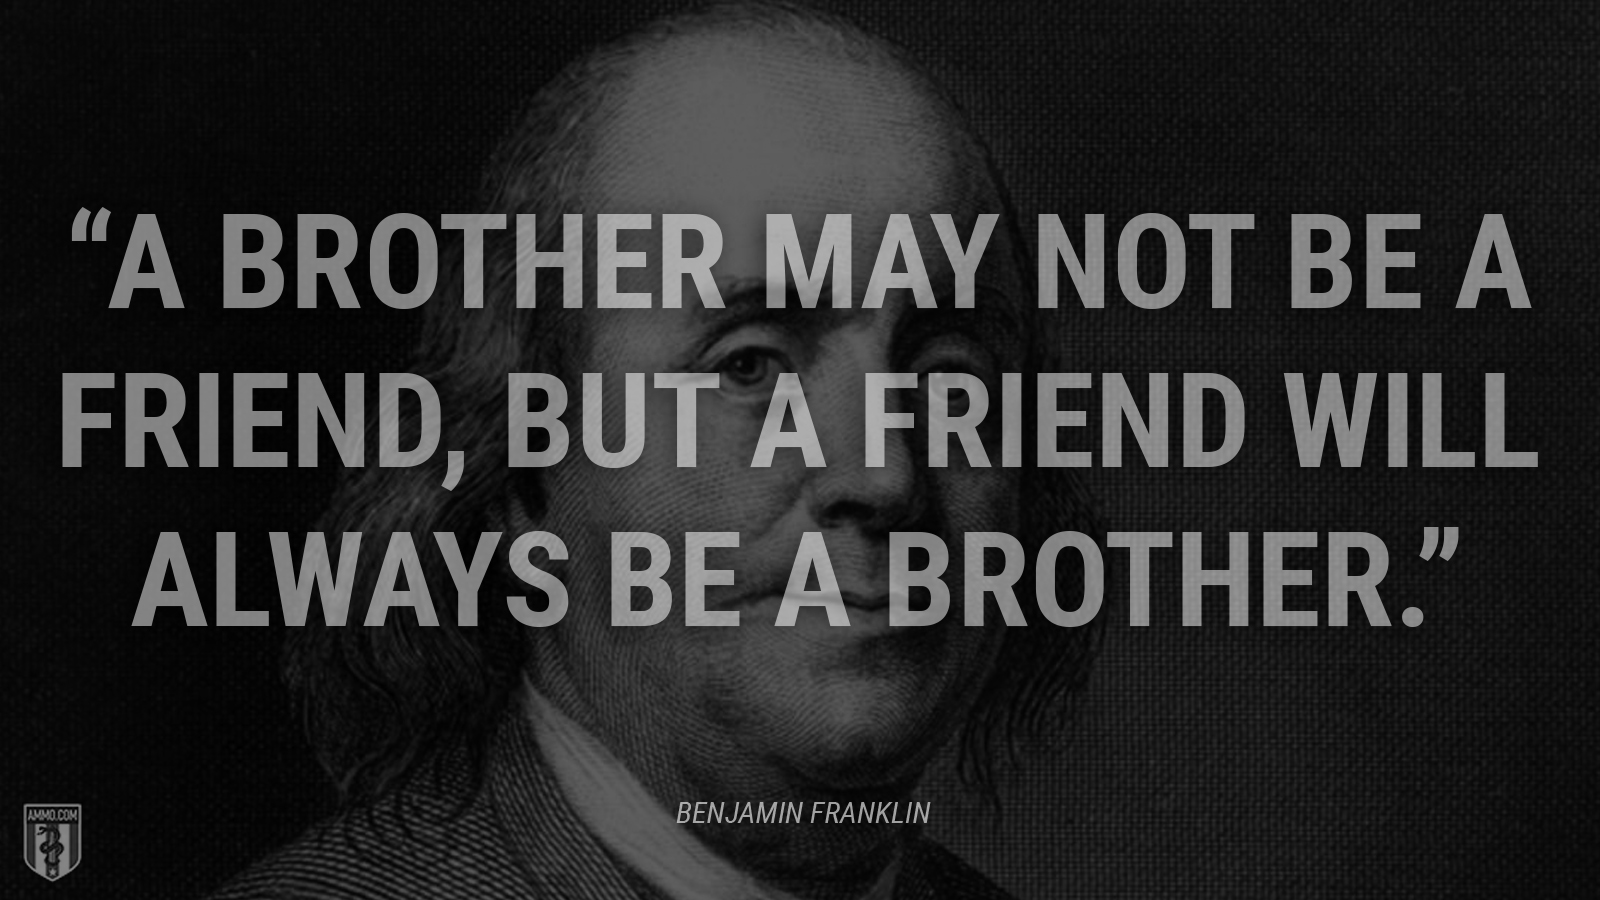 """A Brother may not be a Friend, but a Friend will always be a Brother."" - Ben Franklin"